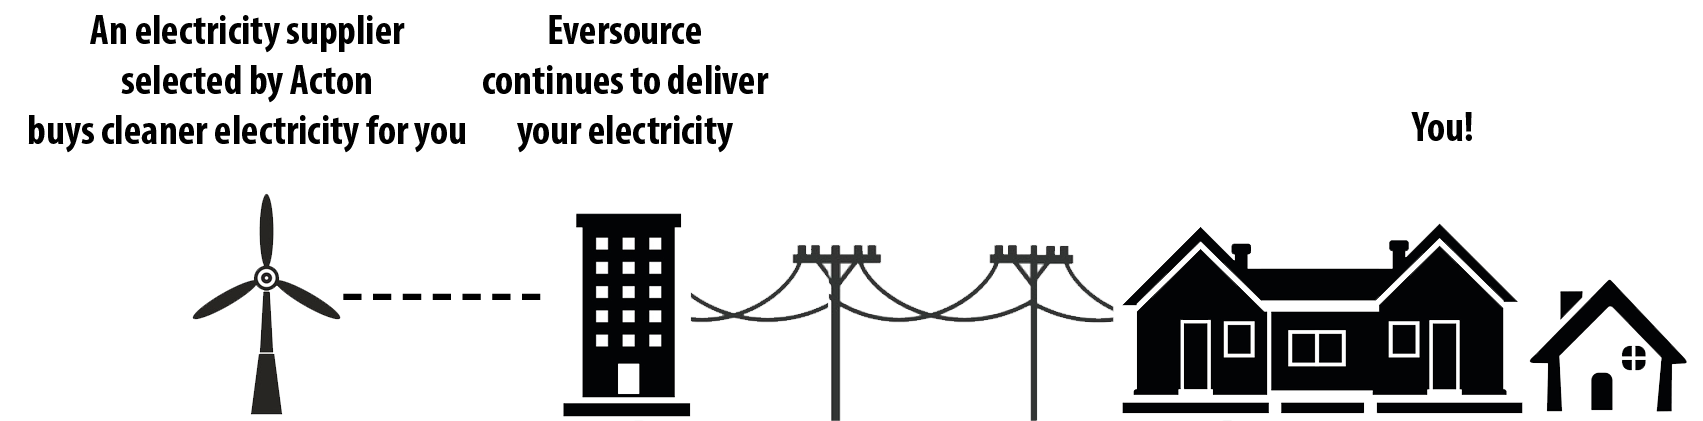 Diagram showing an electricity supplier, Eversource, and the town of Acton